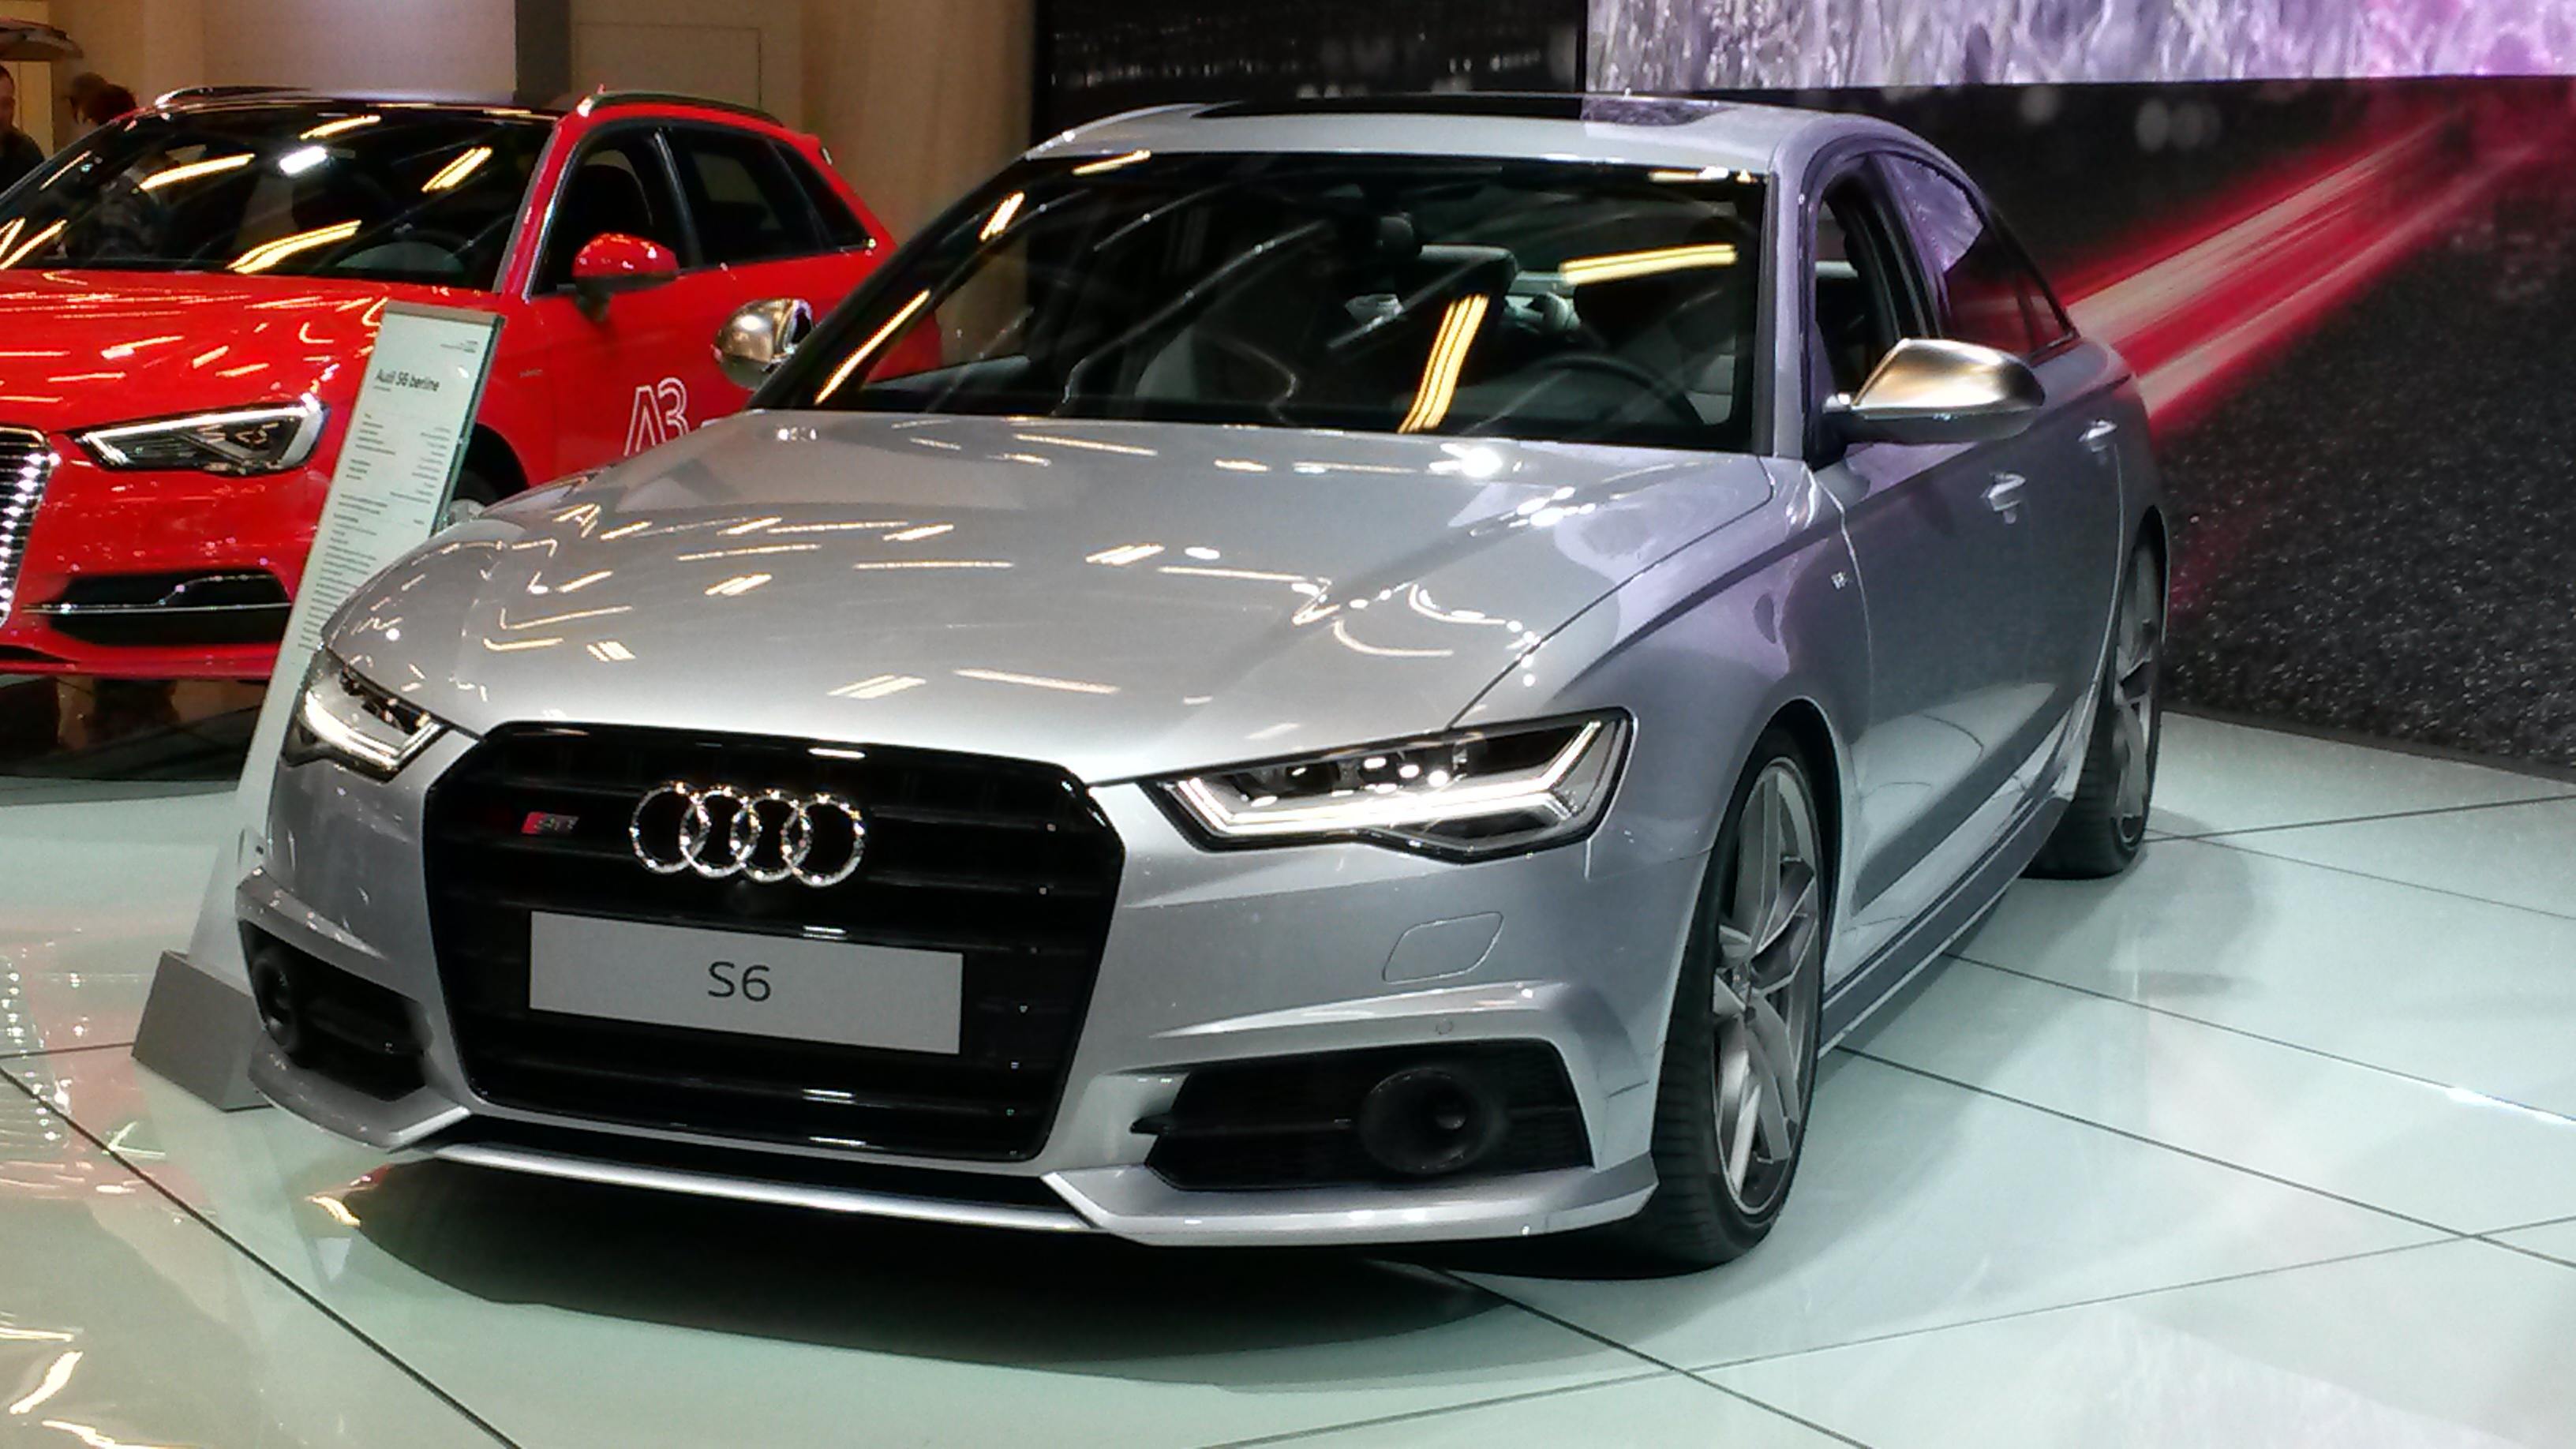 file audi s6 in salon international de l auto de montr al wikimedia commons. Black Bedroom Furniture Sets. Home Design Ideas